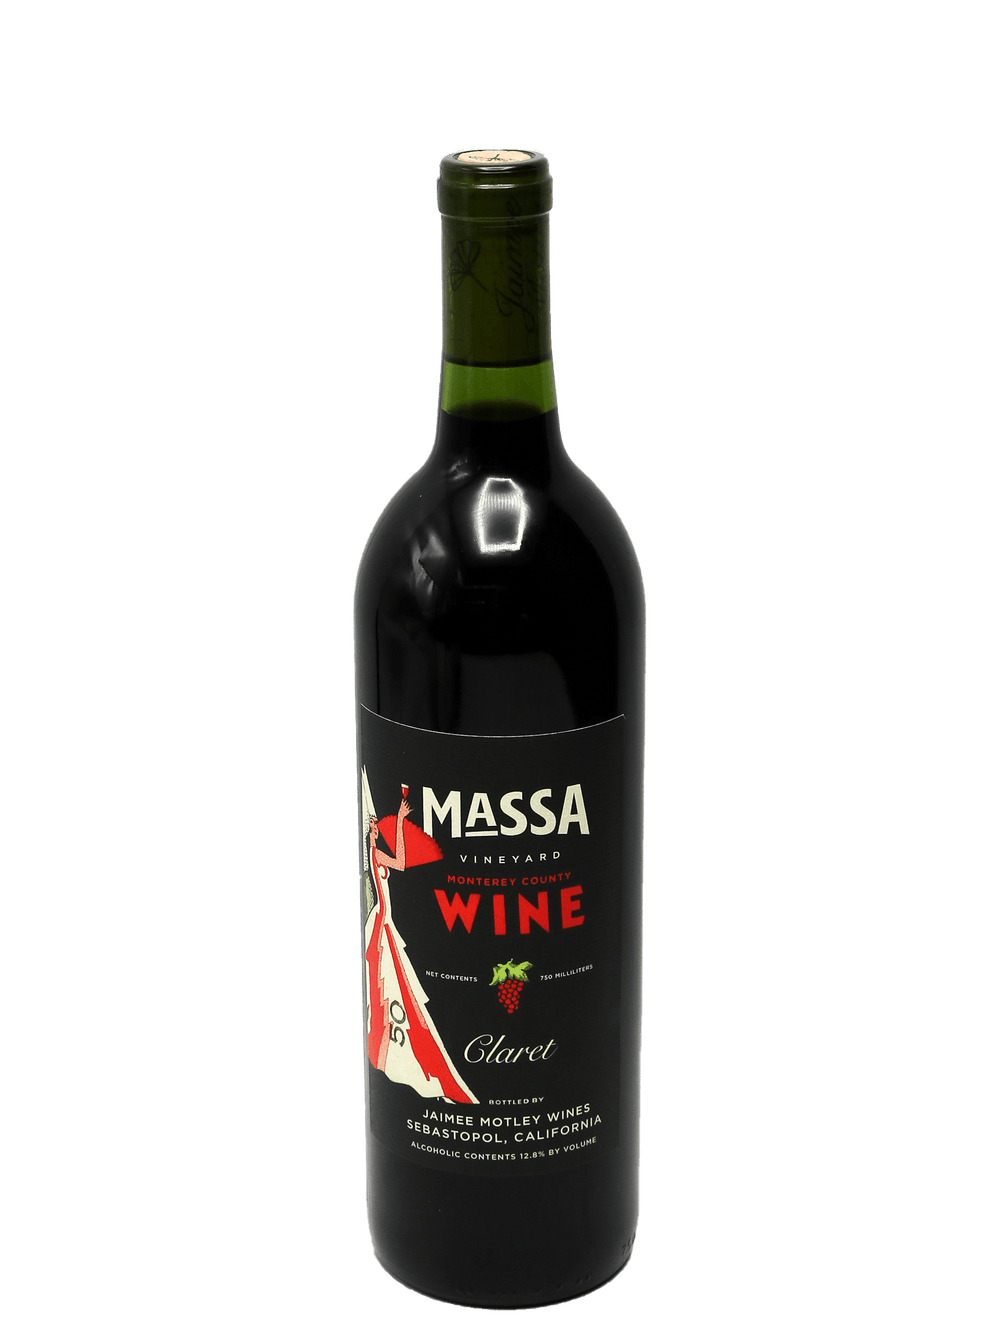 2018 Jaimee Motley Wines Massa Vineyard Claret